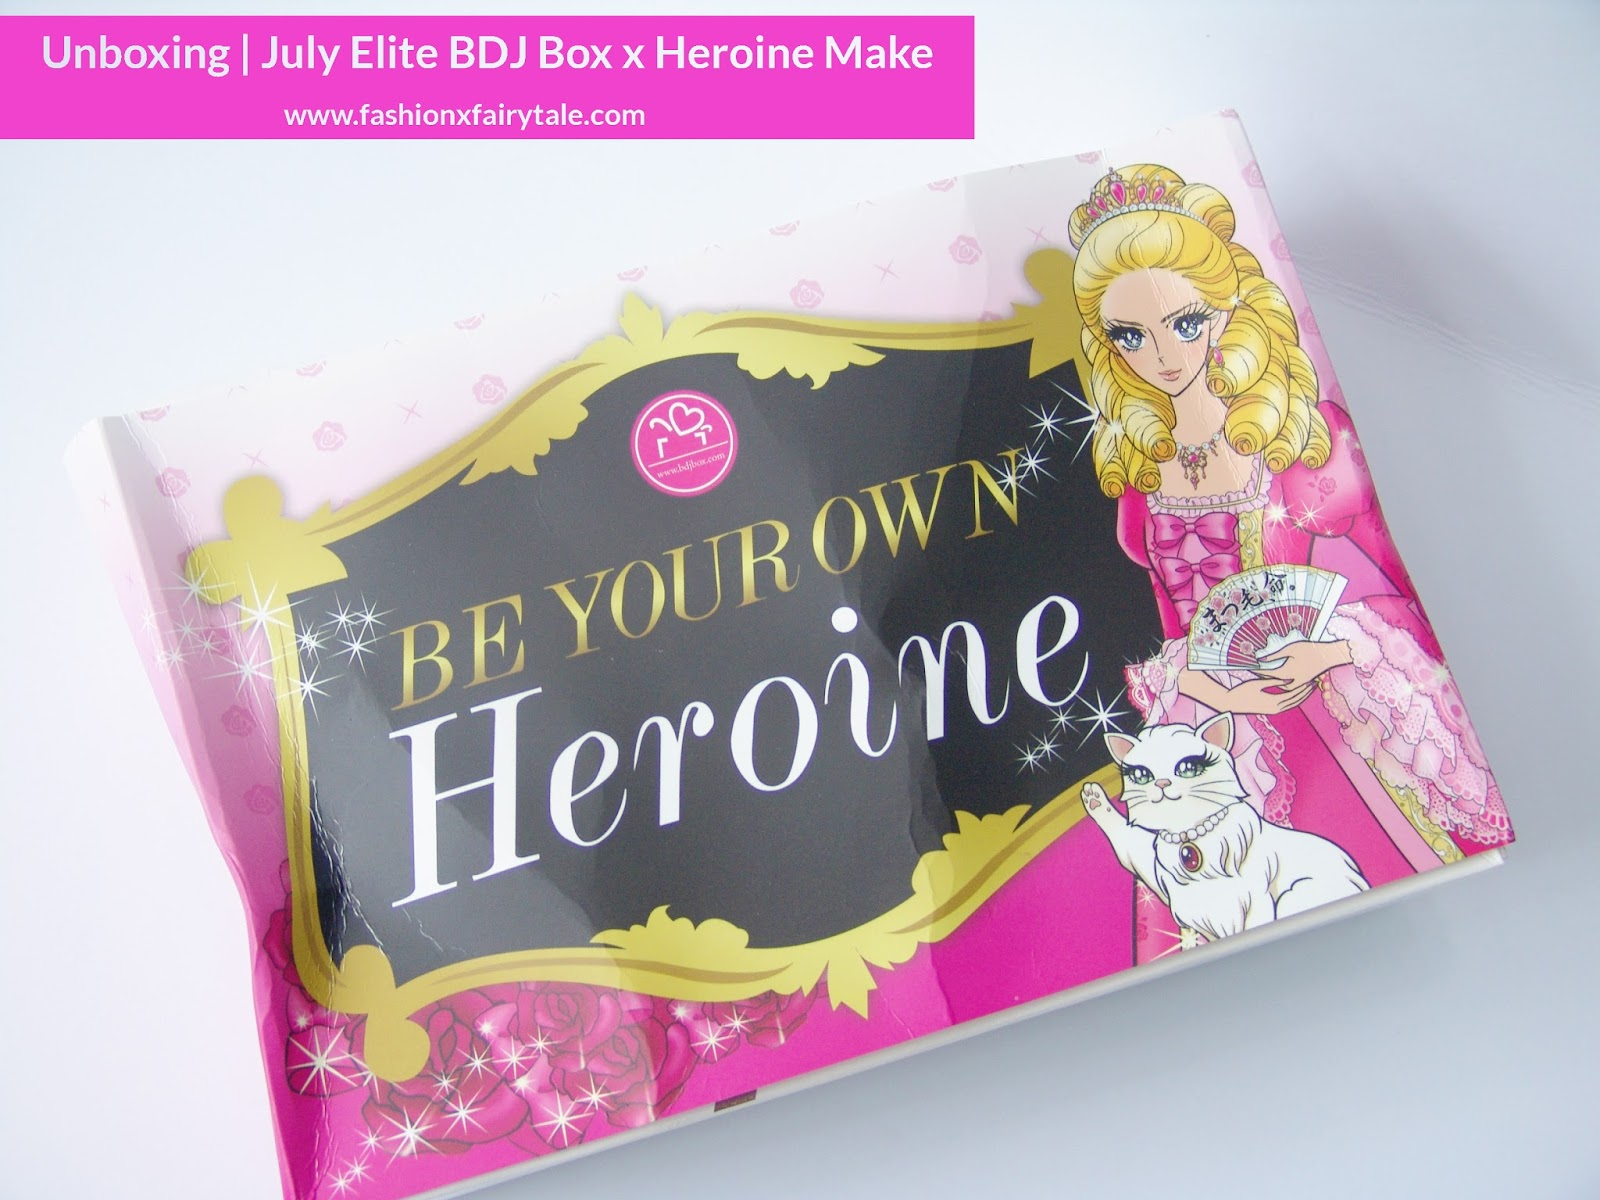 Unboxing | July Elite BDJ Box x Herione Make